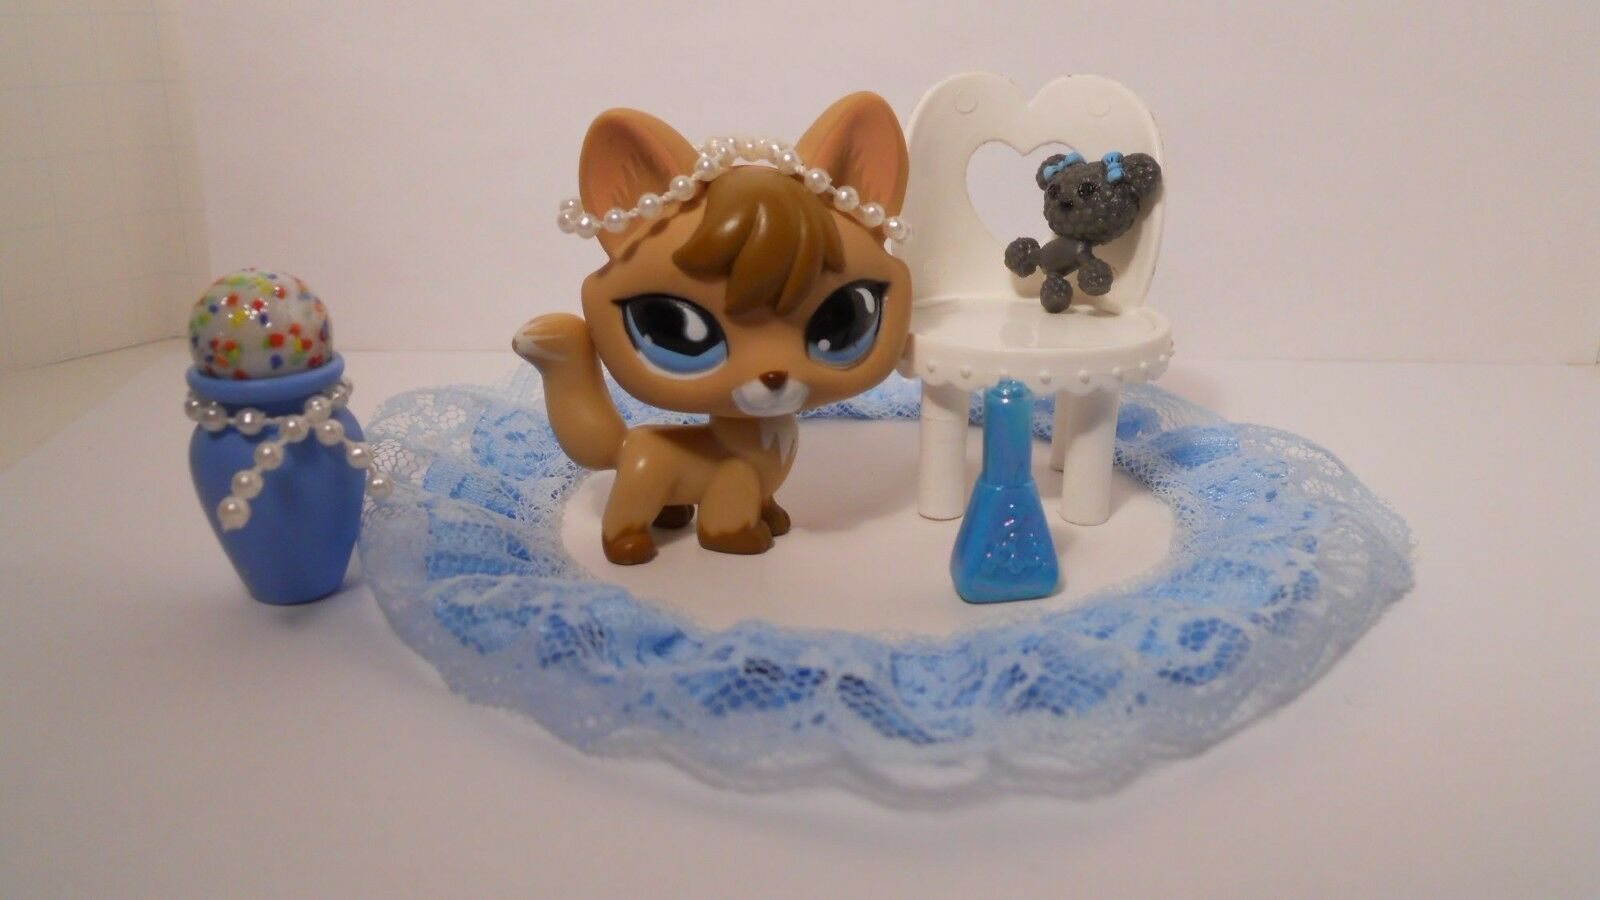 LPS Littlest Pet Shop Tan Tan Tan And Brown Fox With bluee Teardrop Eyes and access 6c0b36